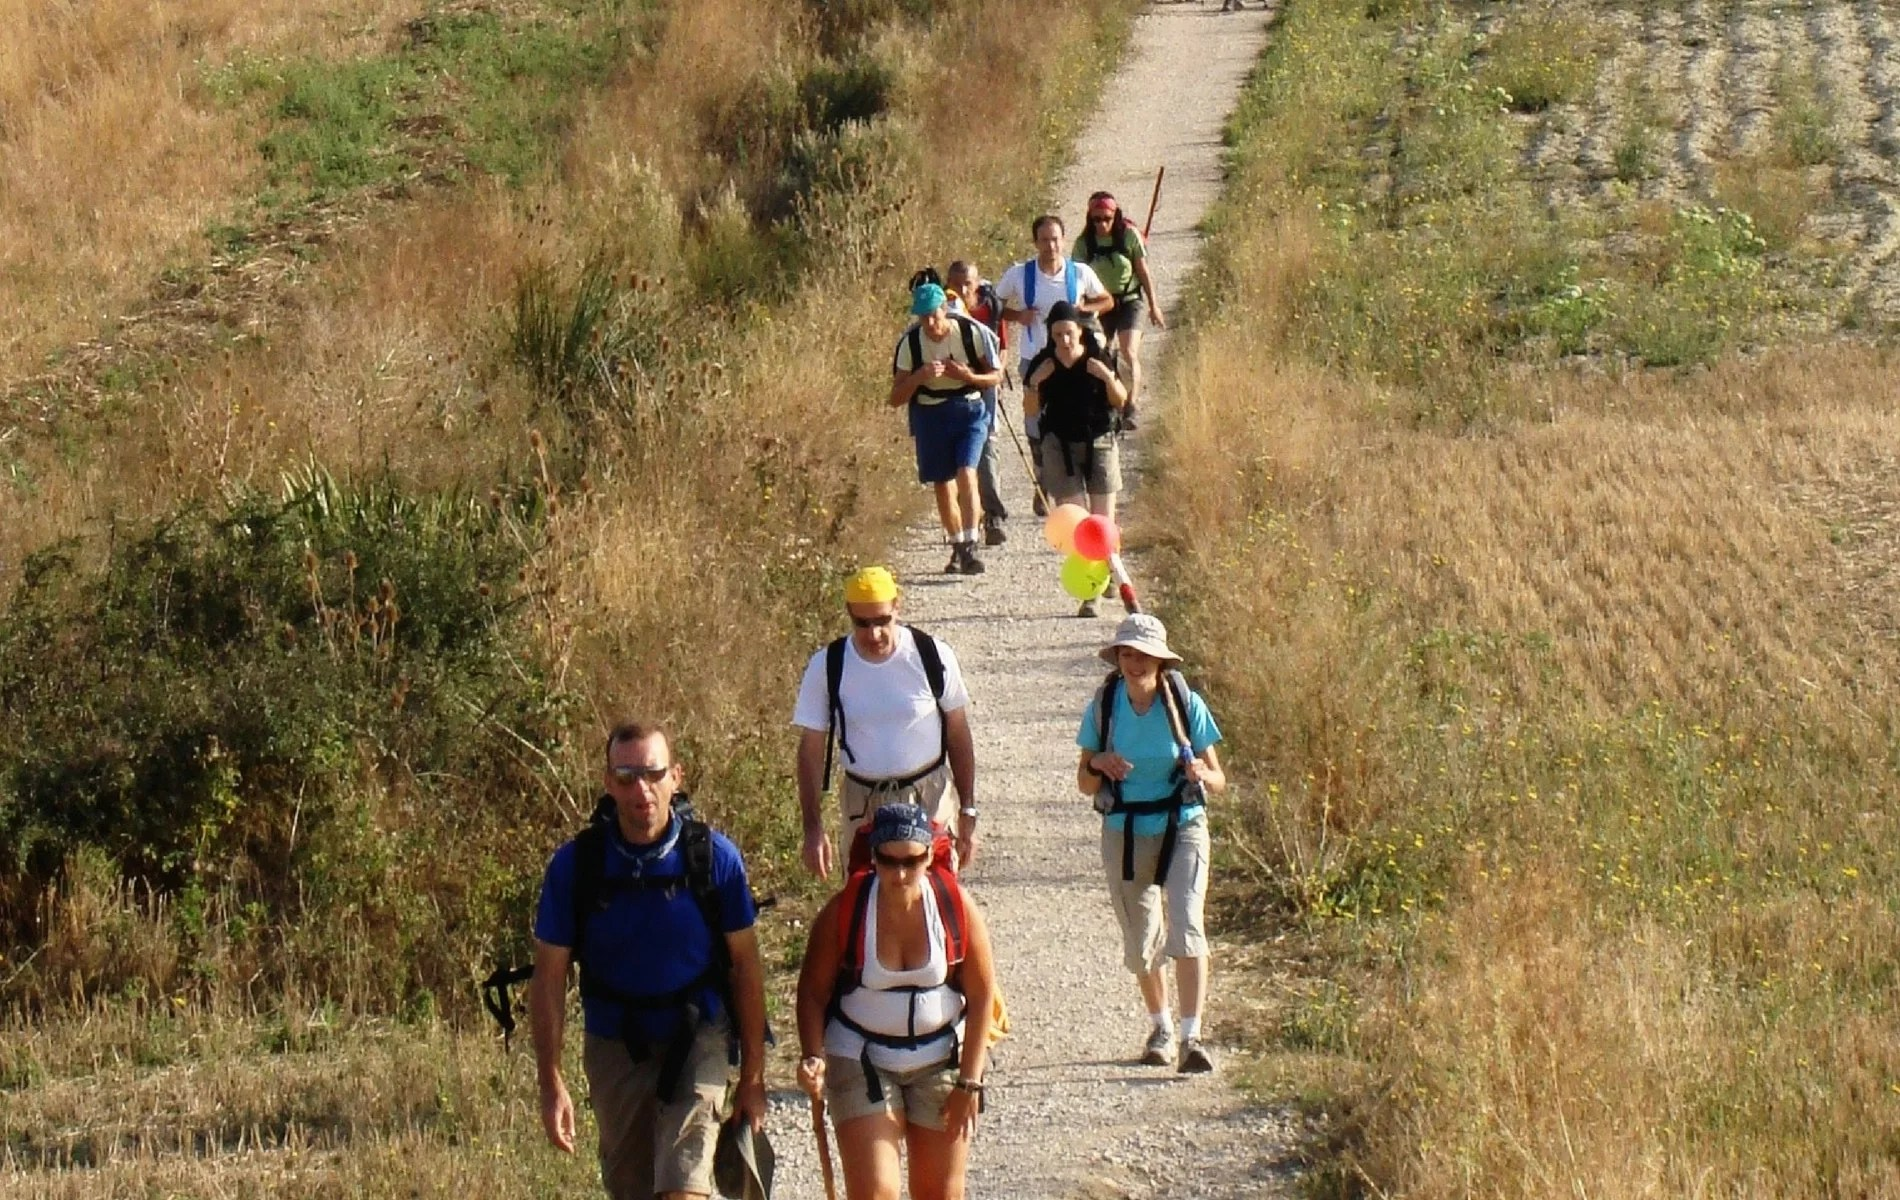 Getting To The Camino De Santiago Raw Travel